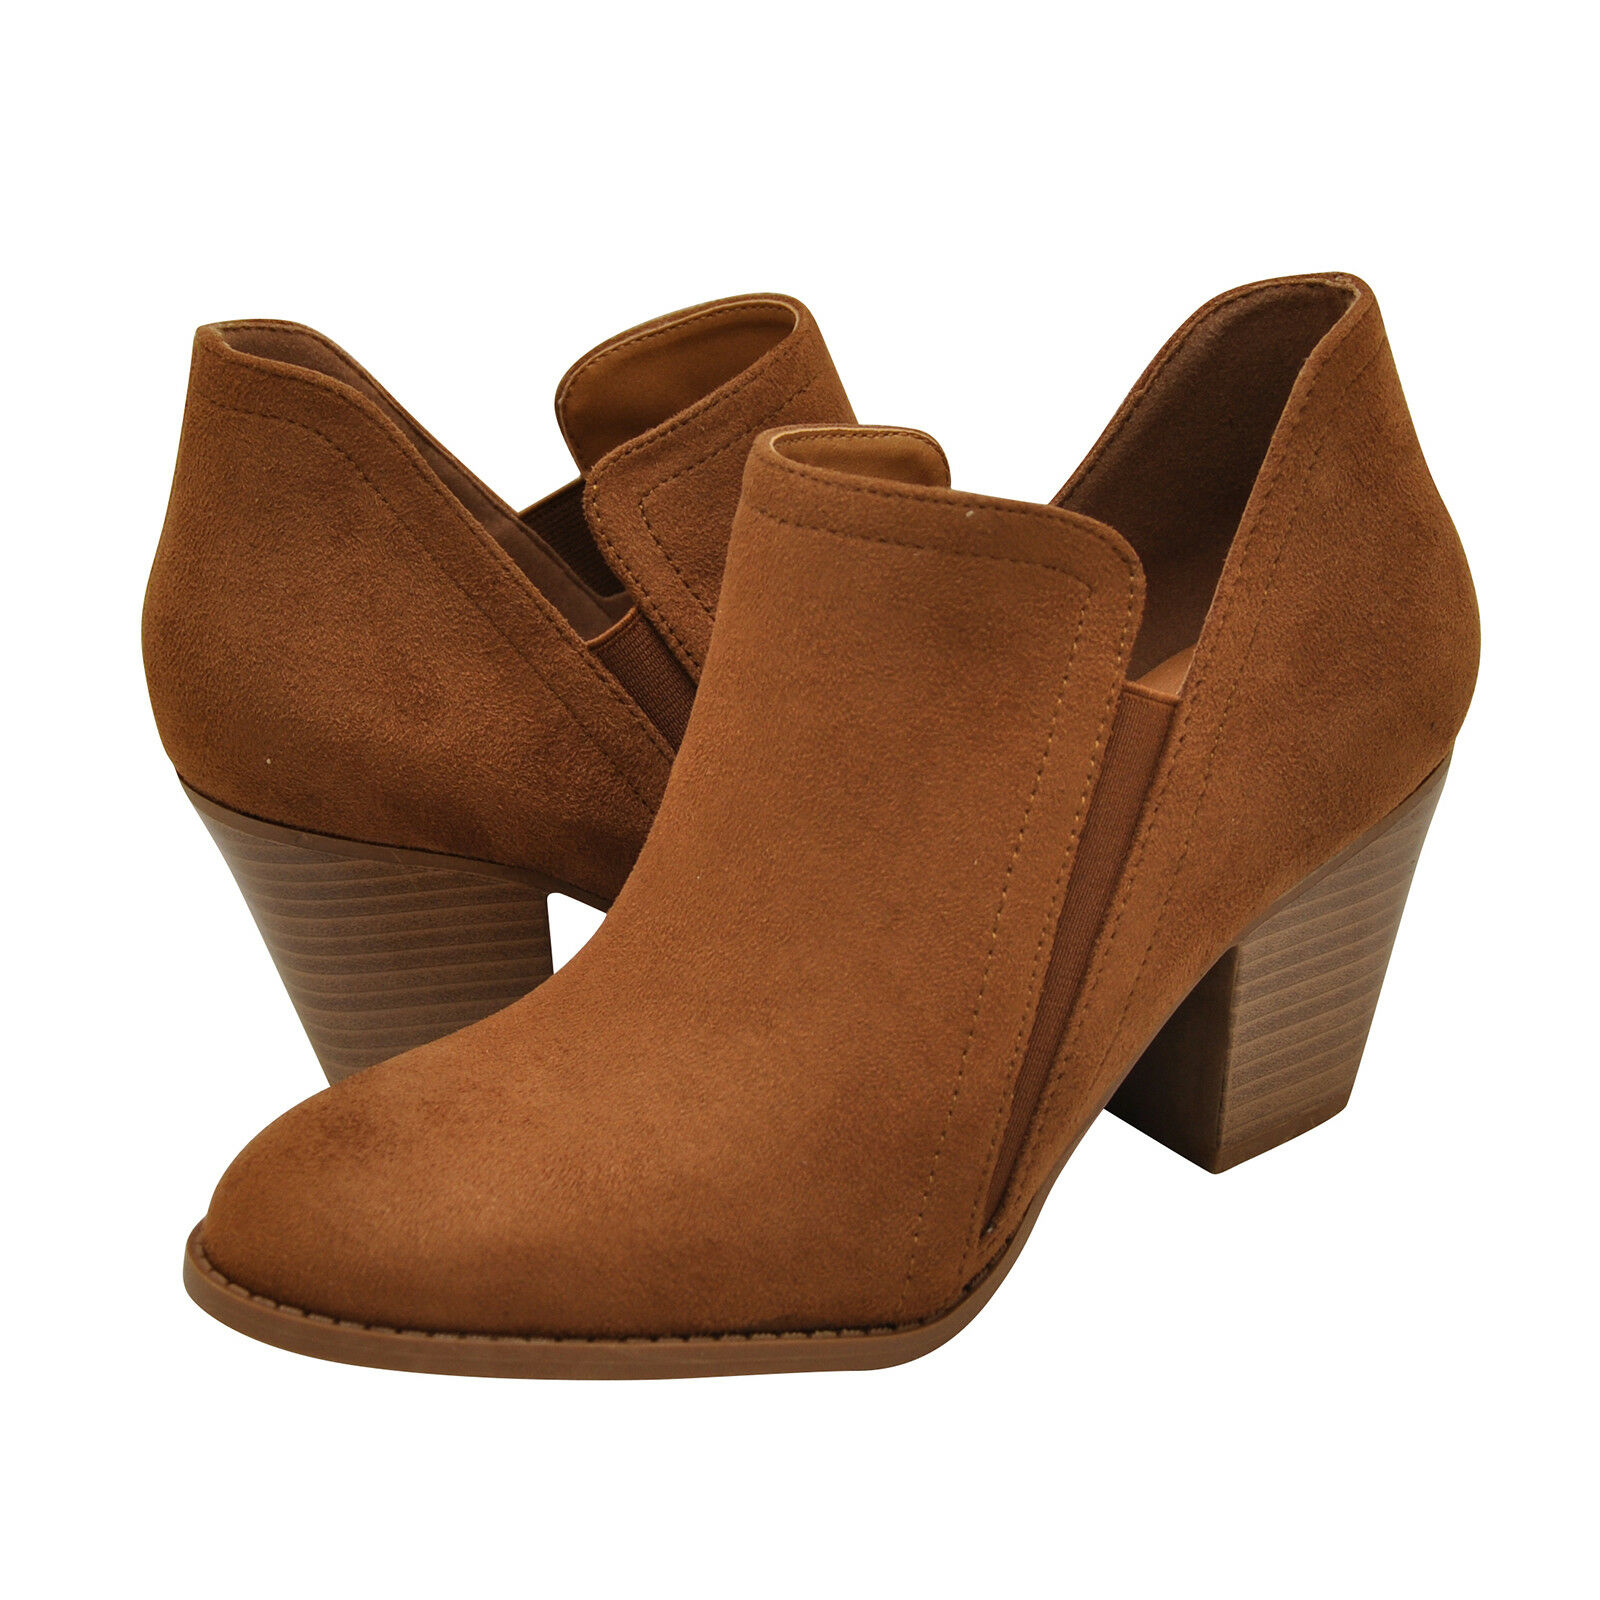 Women's shoes City Classified COIN Faux Suede Slip On Booties CHESTNUT New